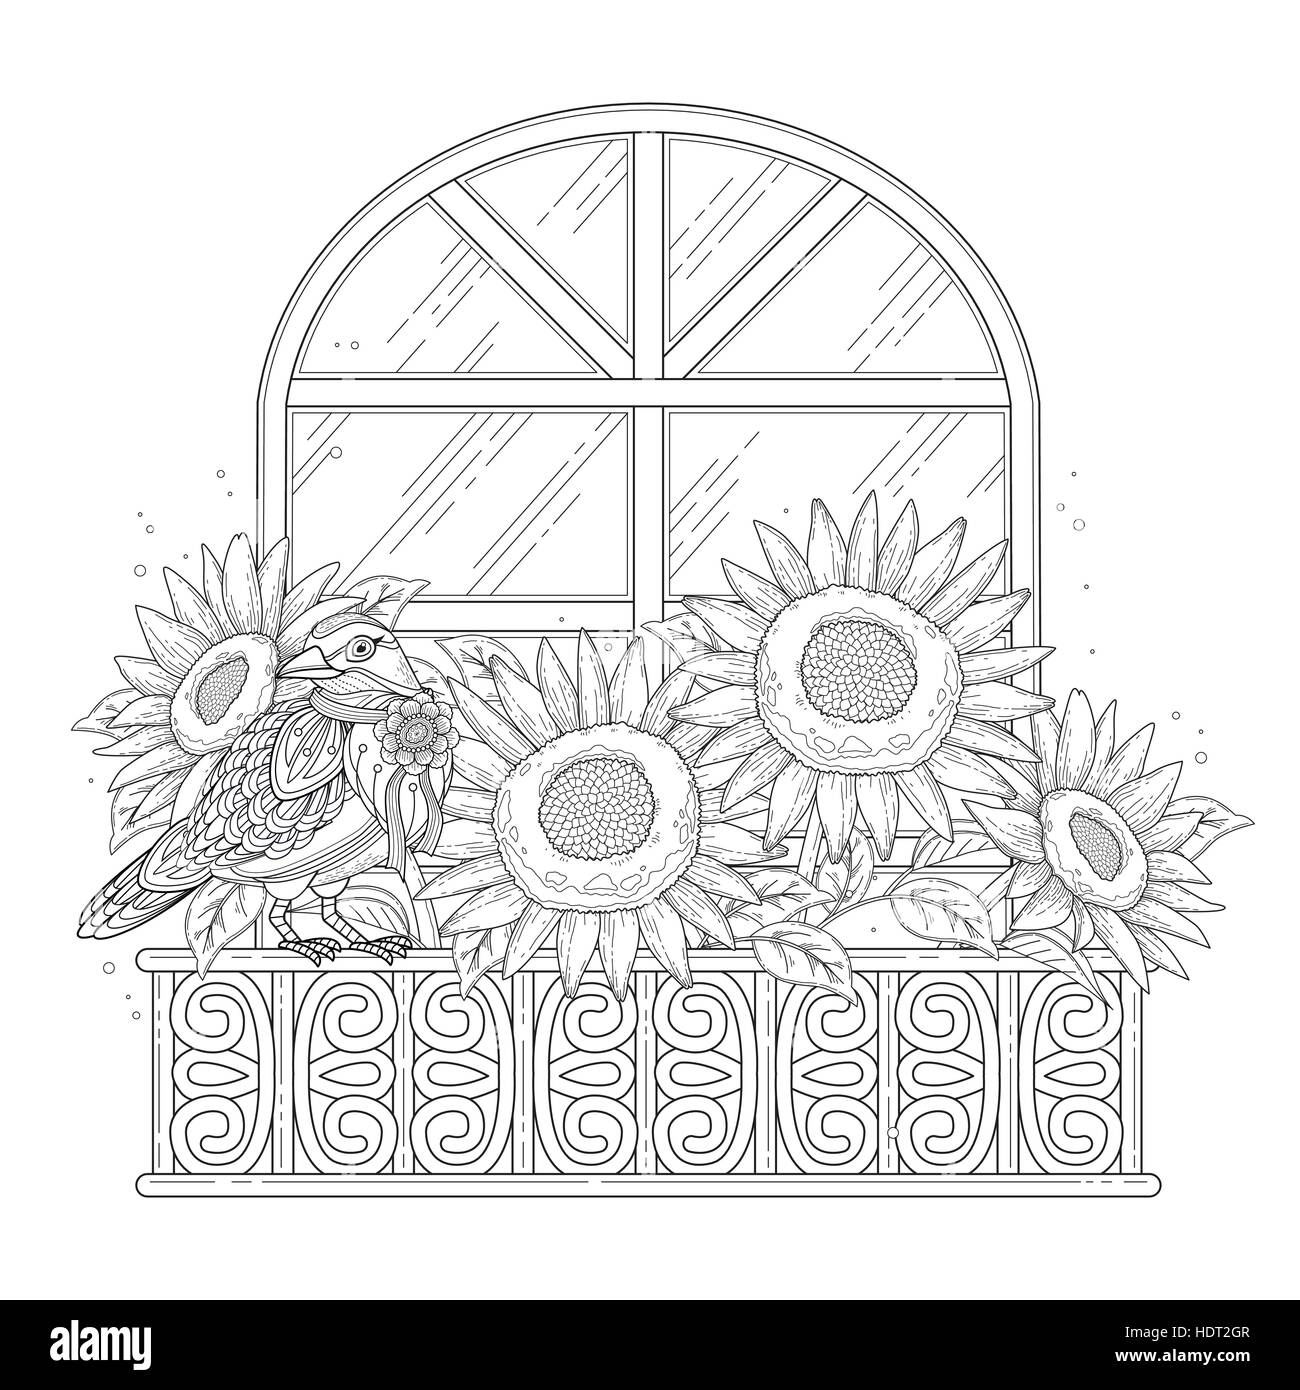 beautiful sunflowers coloring page with floral elements in ...